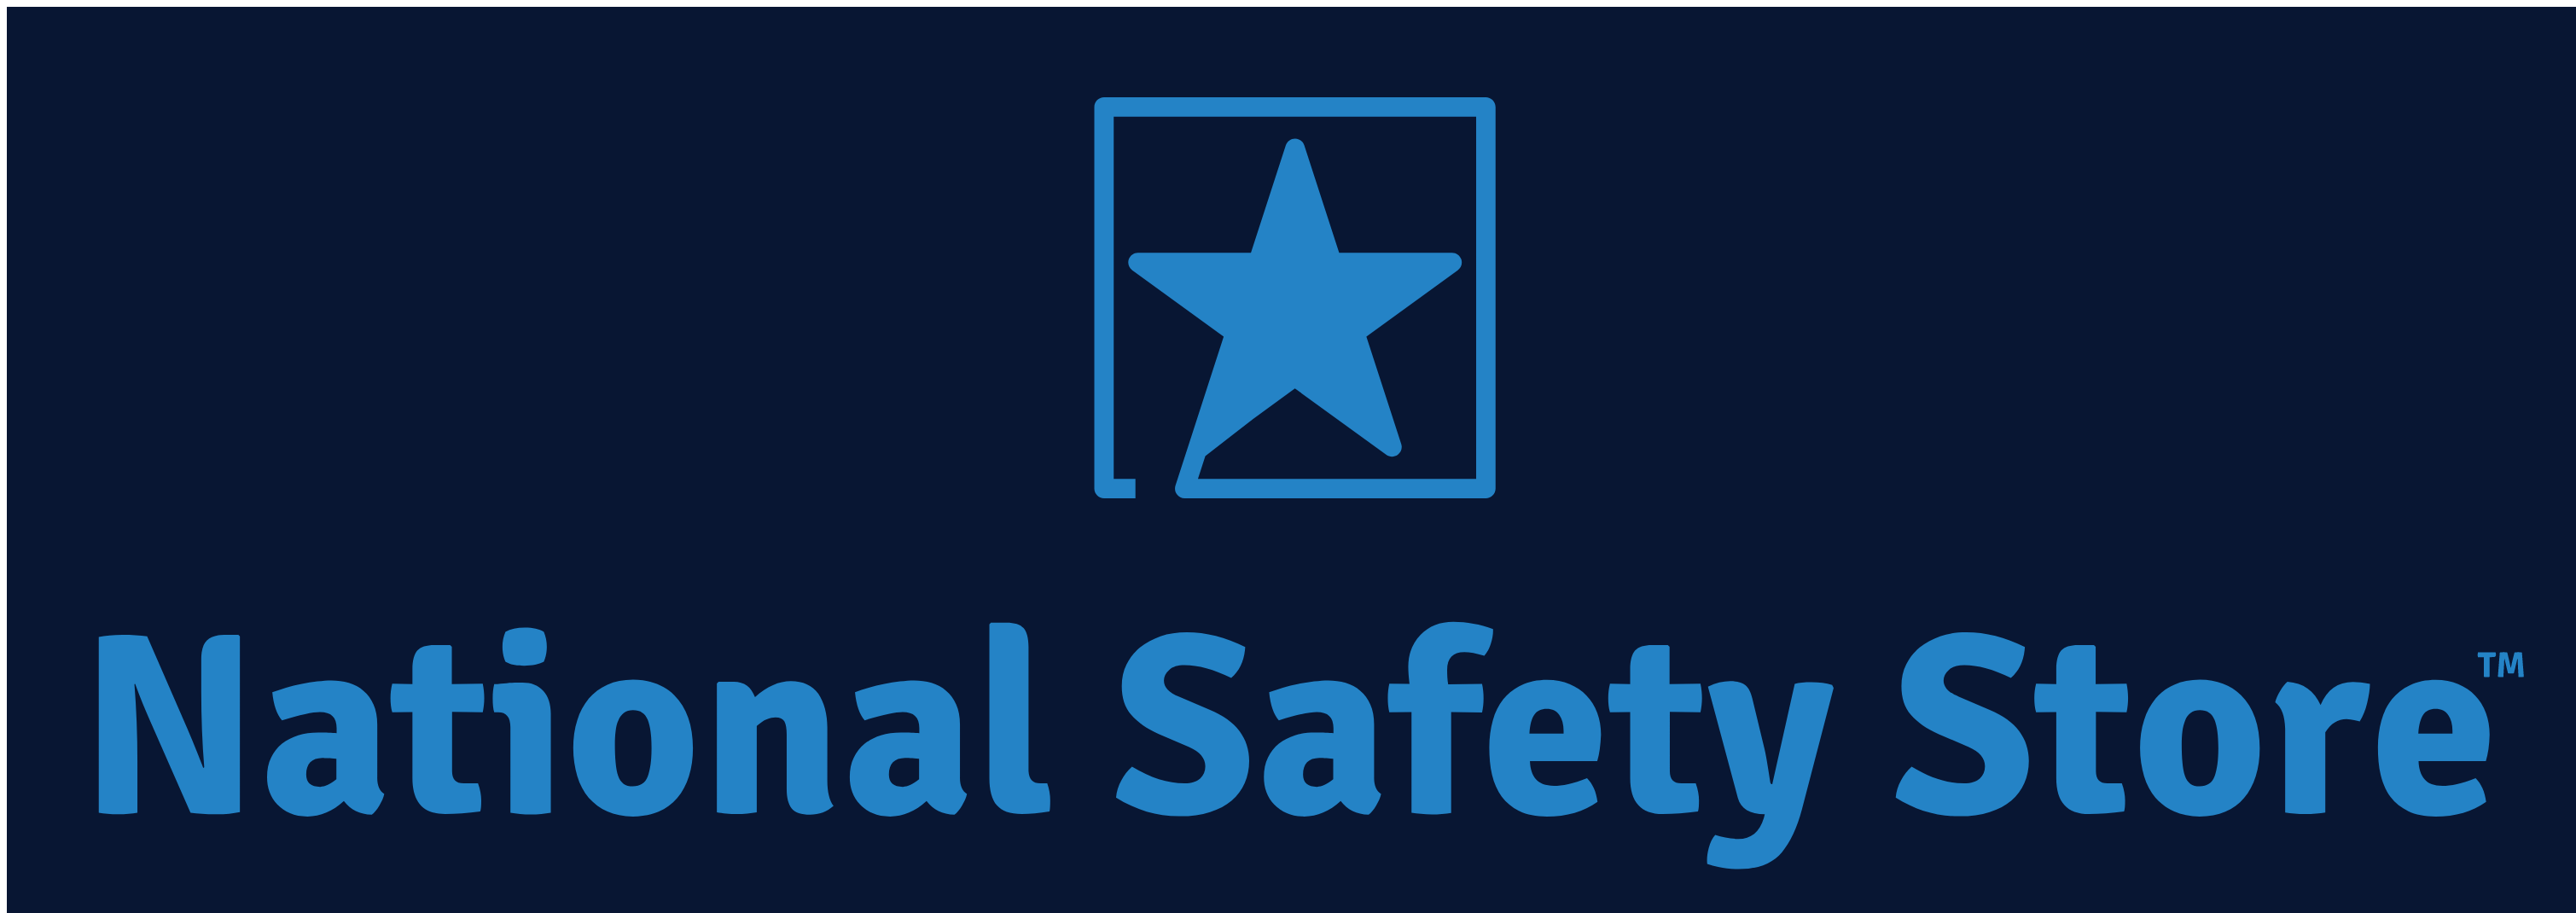 National Safety Store